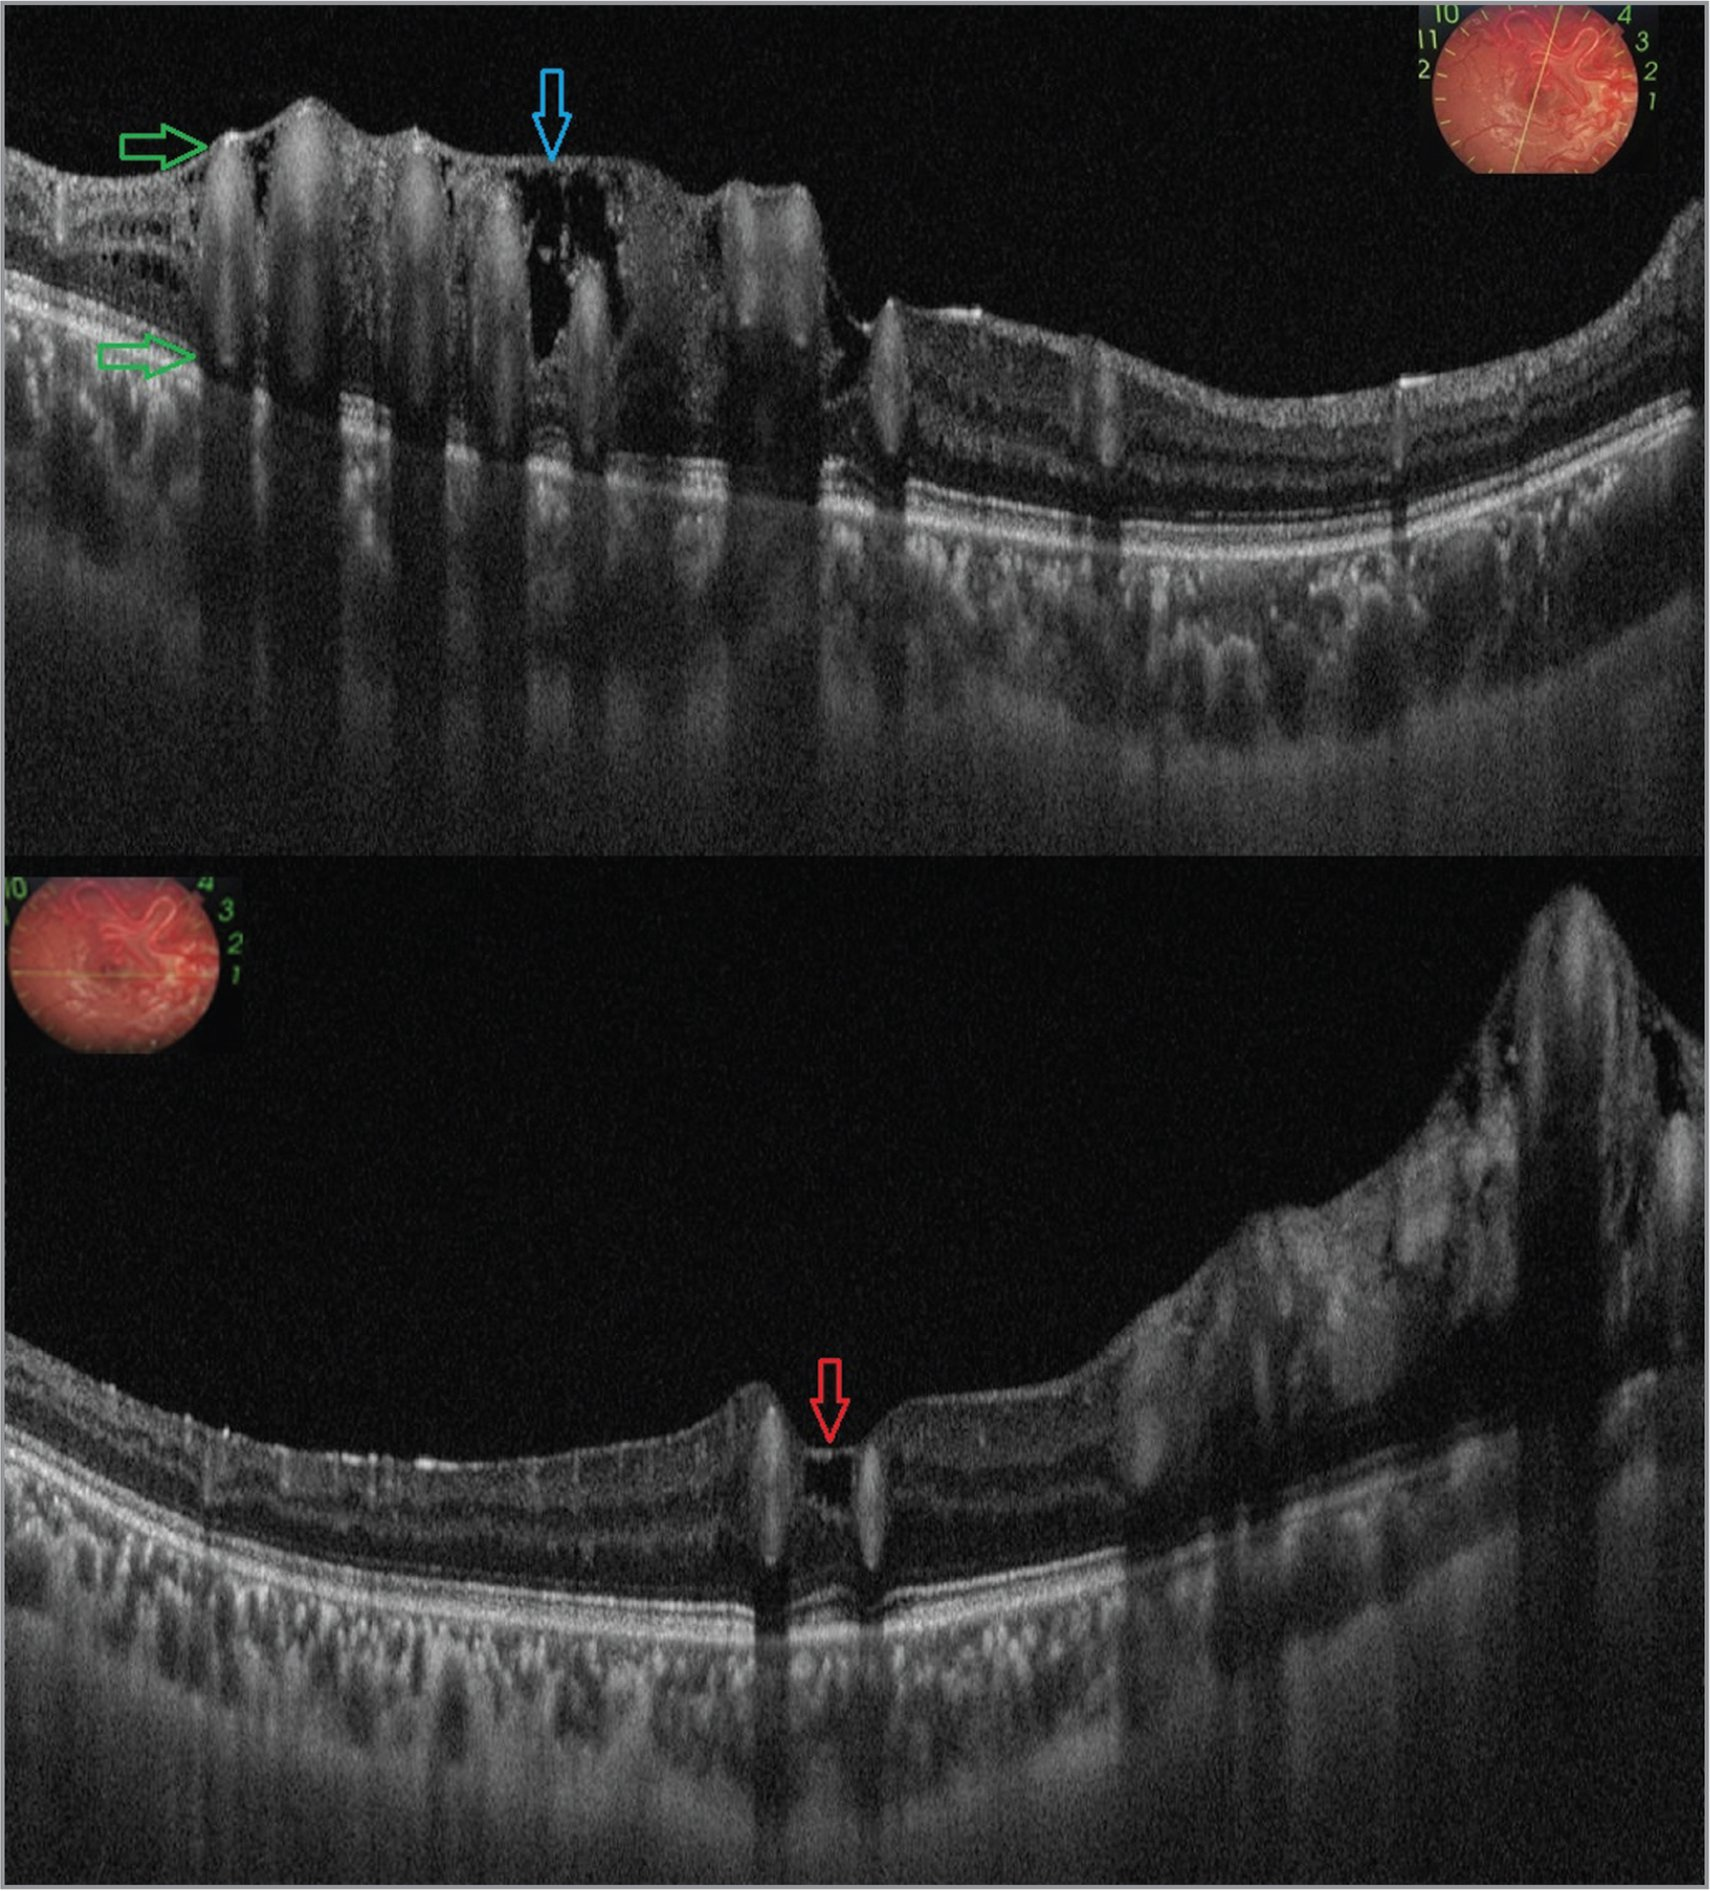 (Top) Swept-source optical coherence tomography (vertical scan) shows larger-caliber vessels spanning the entire thickness of the retina (green arrows). Schisis areas are seen just beneath the internal limiting membrane (ILM) (blue arrow; inset shows scan orientation). (Bottom) Foveal contour is lost with elevation of the ILM (red arrow) above the outer retinal layers due to adjacent large anomalous vessels at the fovea. (Horizontal scan) Underlying outer retinal layers are intact. Absence of intraretinal and subretinal fluid is apparent (Inset shows scan orientation).